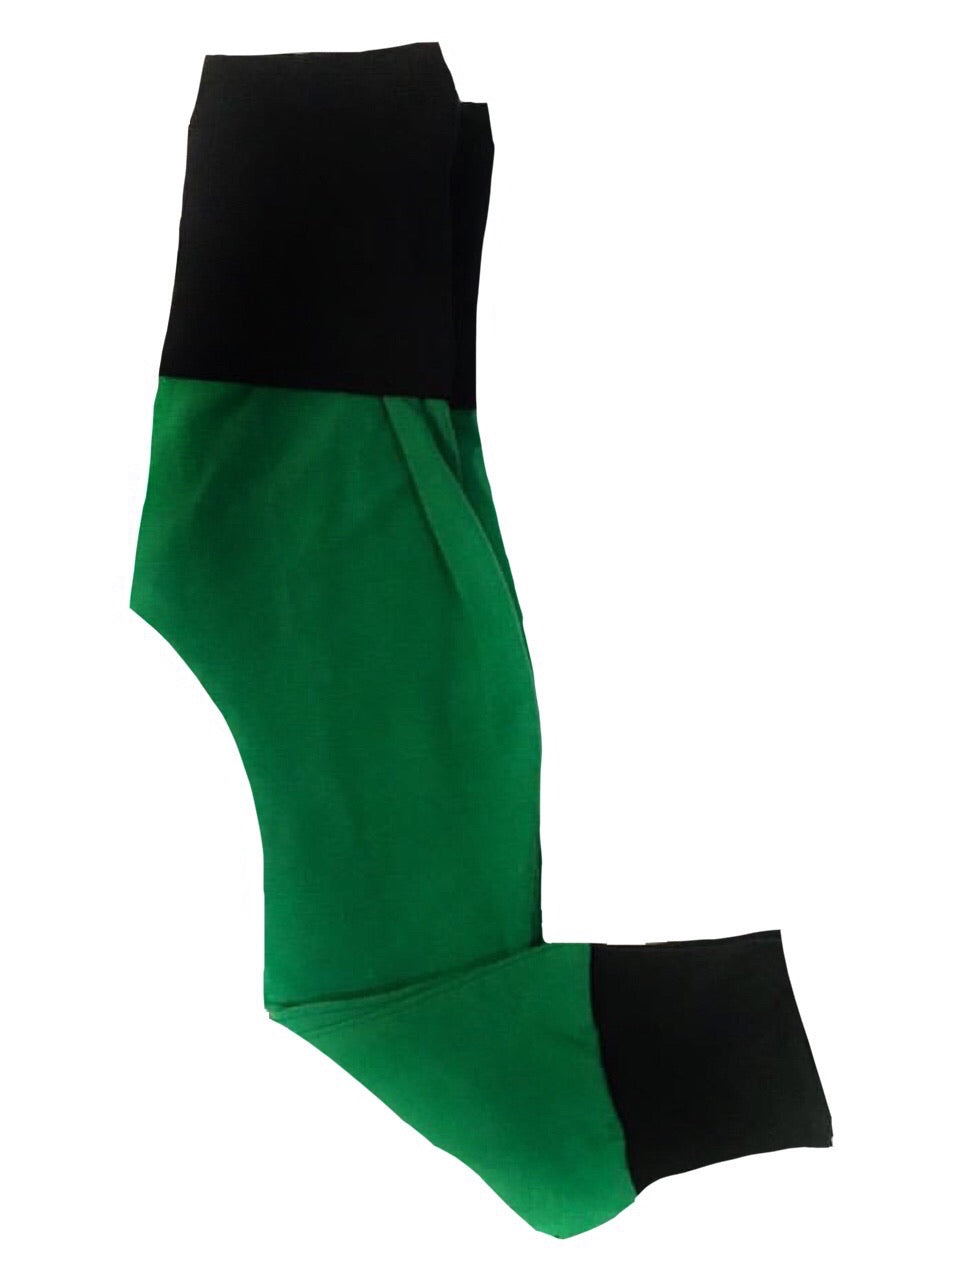 ST. patties green BOTTOM